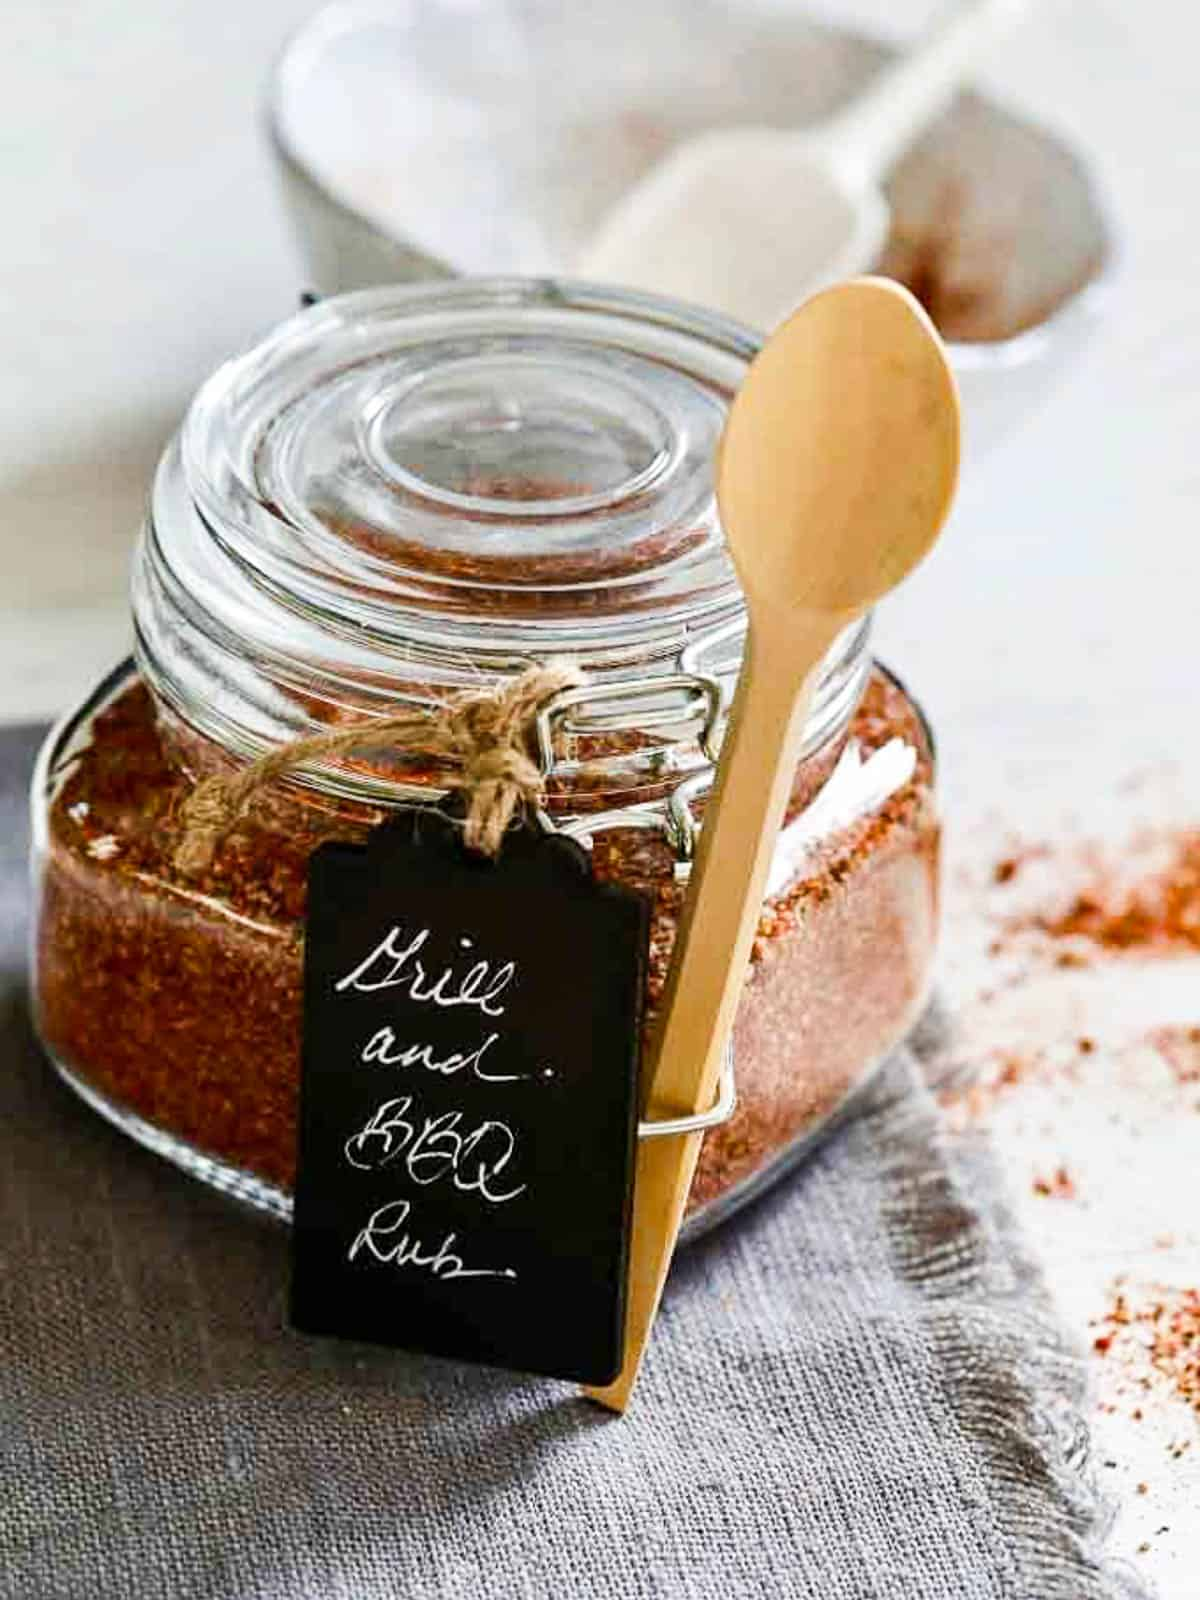 A small glass clamp jar filled with Grill and BBQ rub mix and a black tag and wood spoon wrapped as a gift.